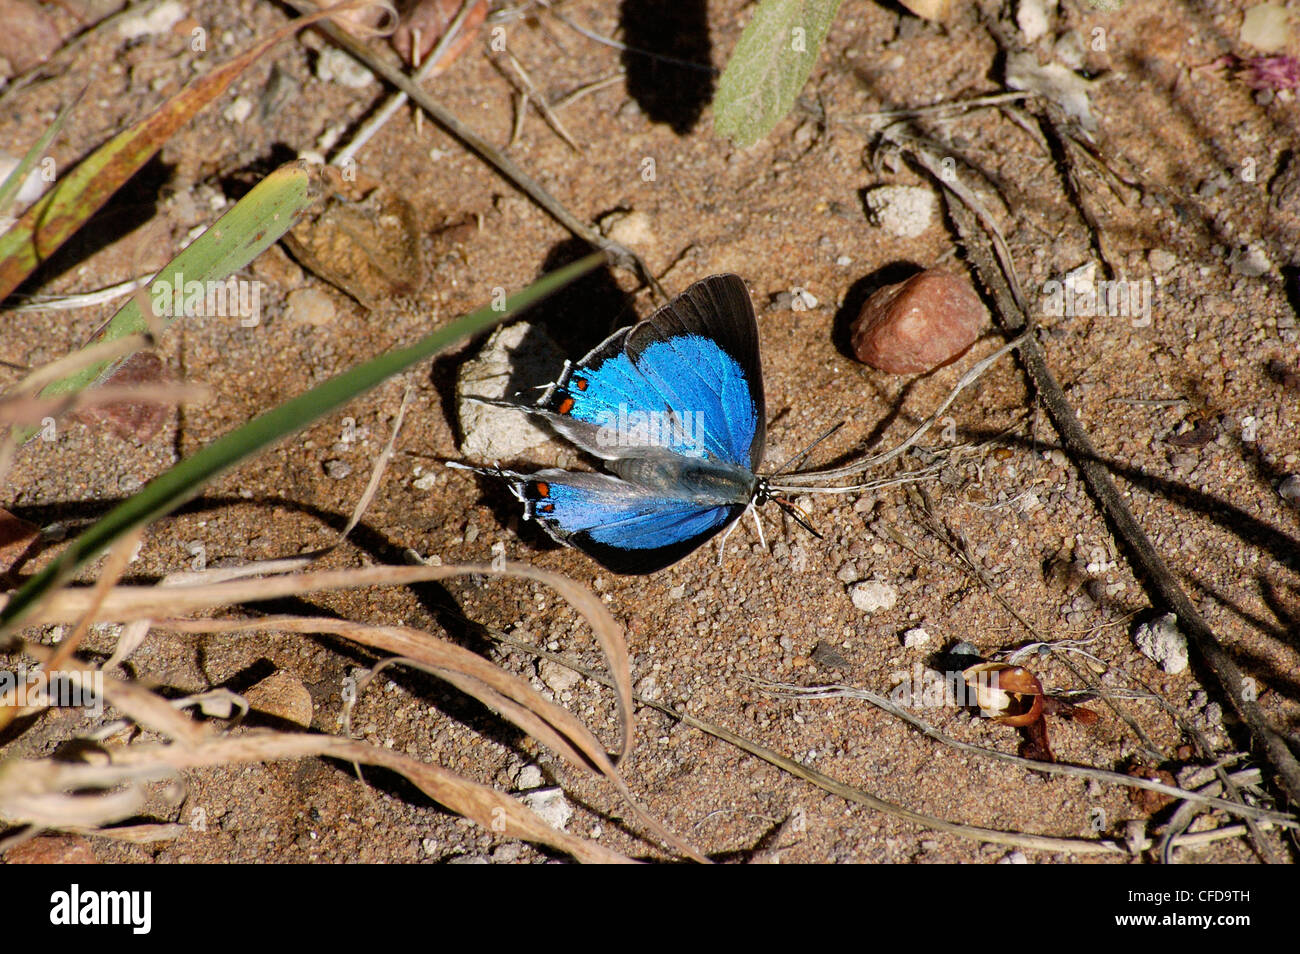 Southern sapphire butterfly (Iolaus silas; Lycaenidae) puddling on muddy ground, South Africa. - Stock Image